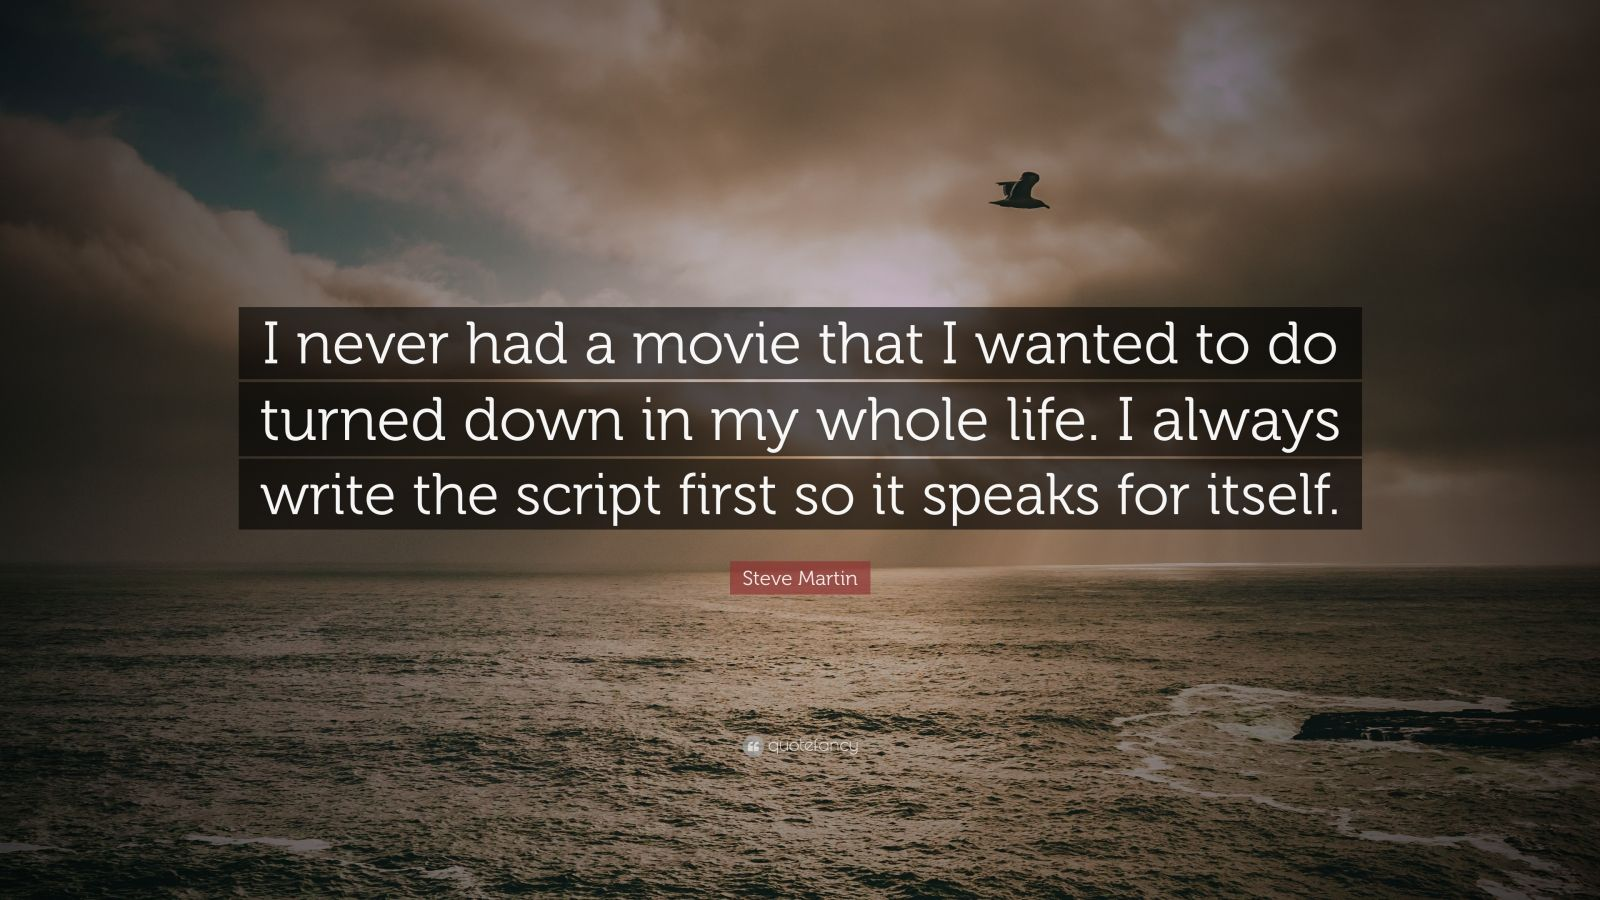 """Steve Martin Quote: """"I never had a movie that I wanted to do turned down in my whole life. I always write the script first so it speaks for itself."""""""